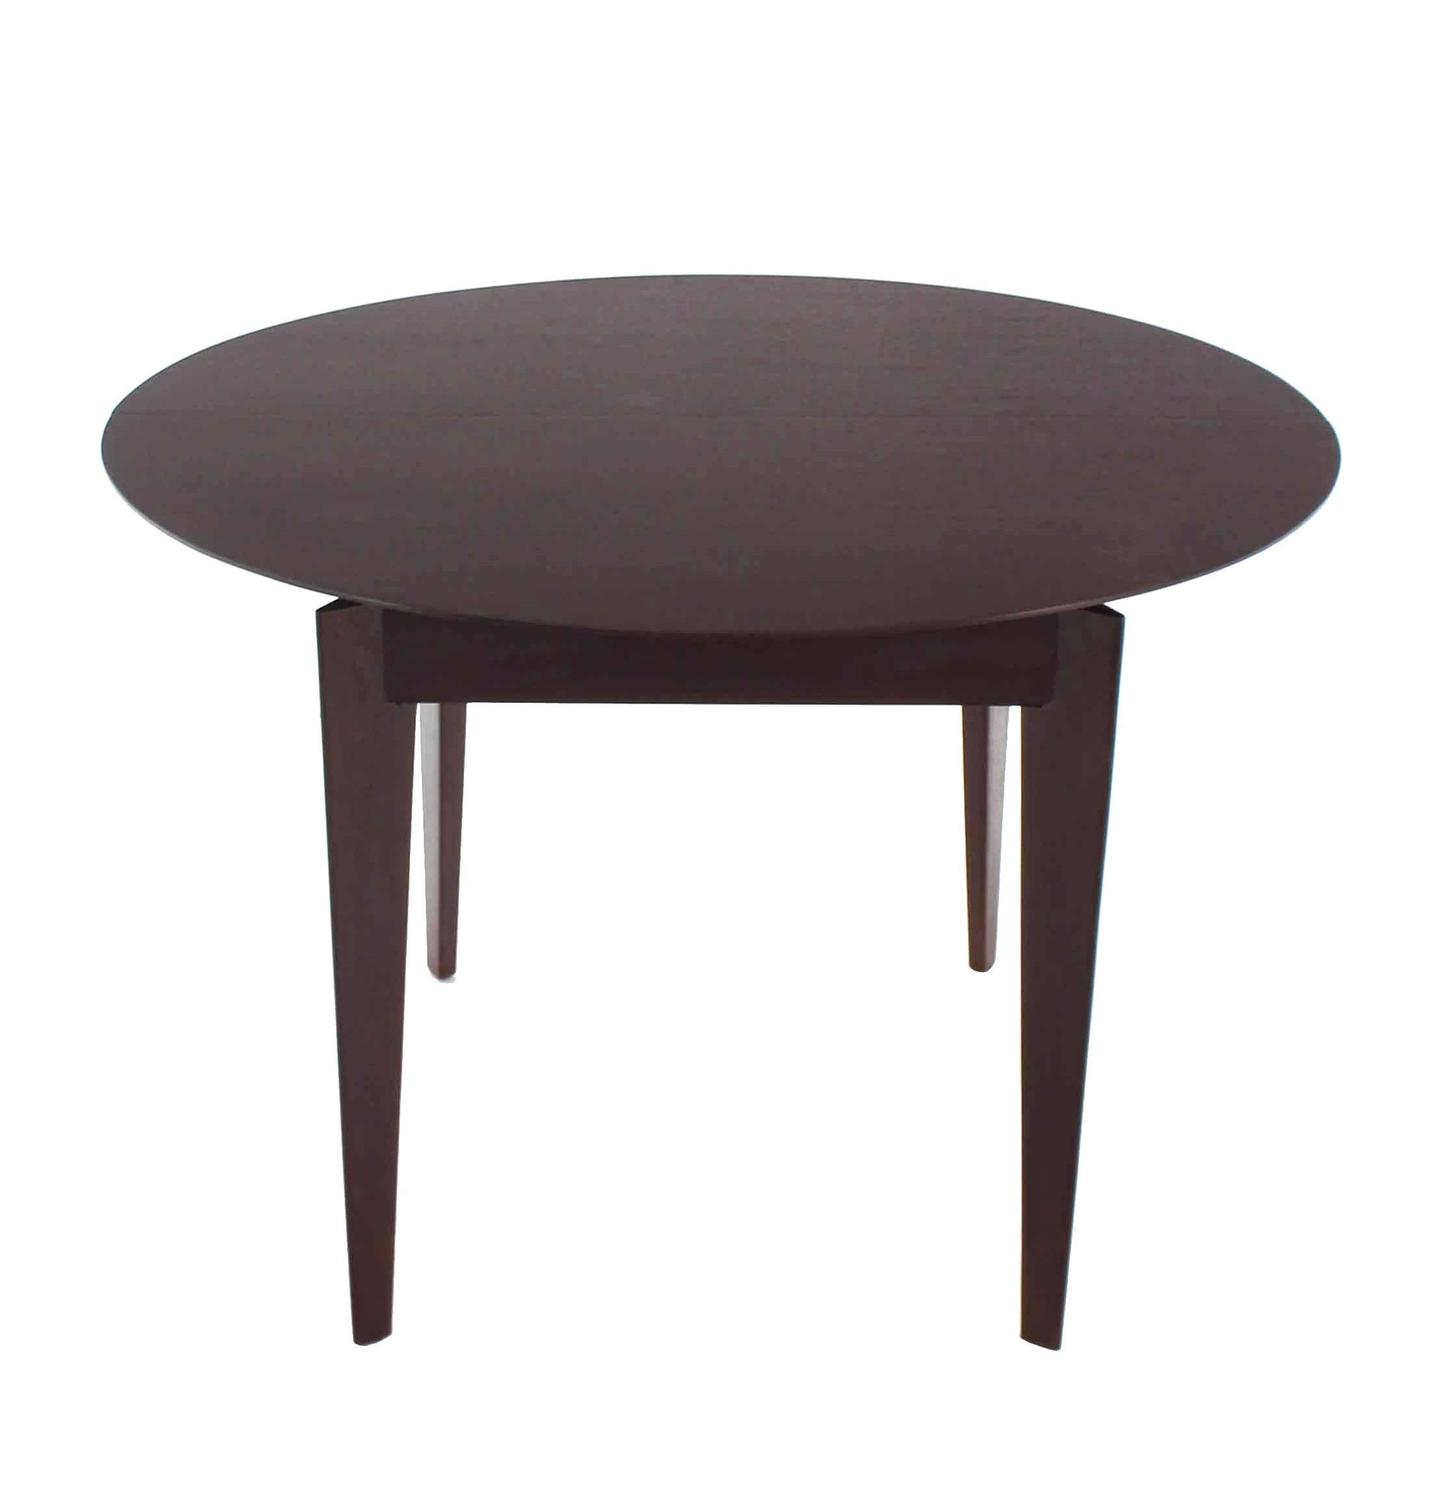 Mid century modern round dining table for sale at 1stdibs for Modern dining tables sale